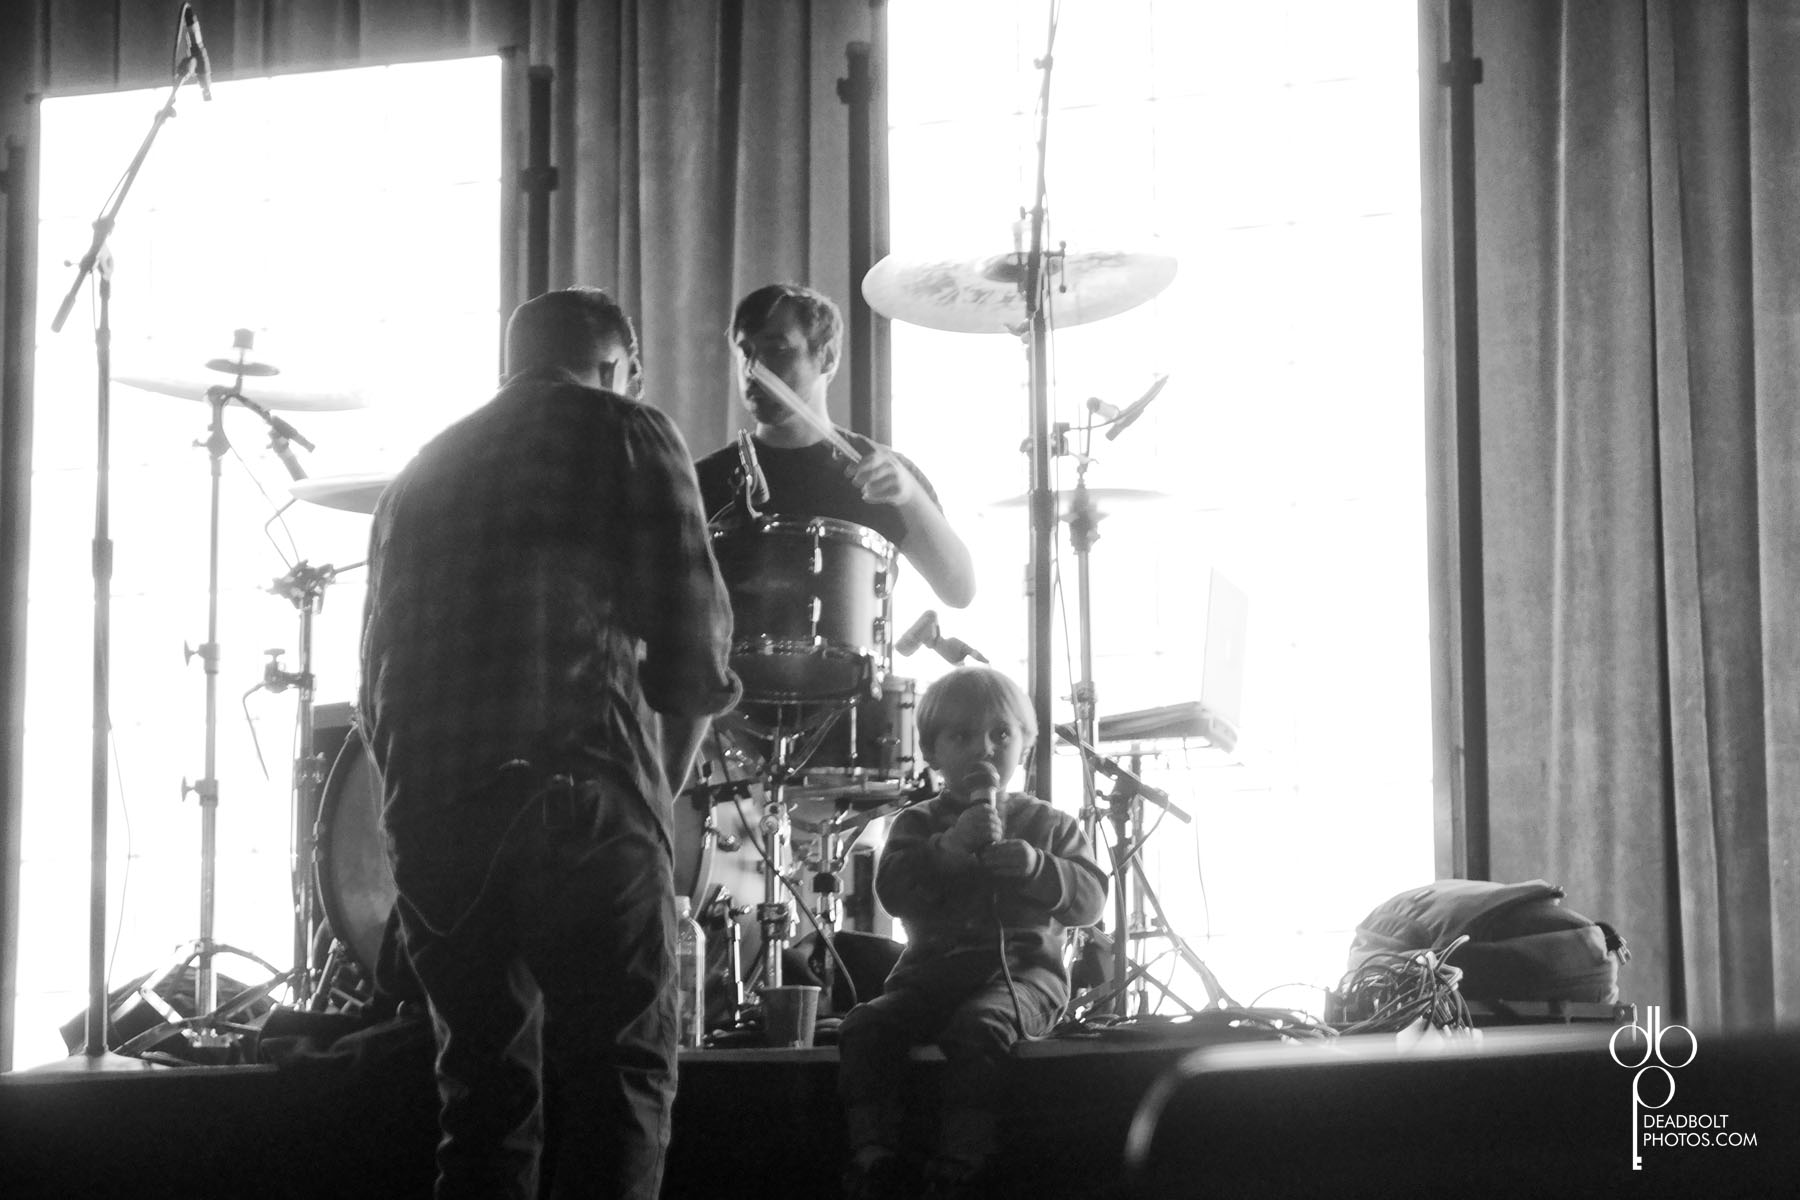 Soundcheck with Circa Survive and James